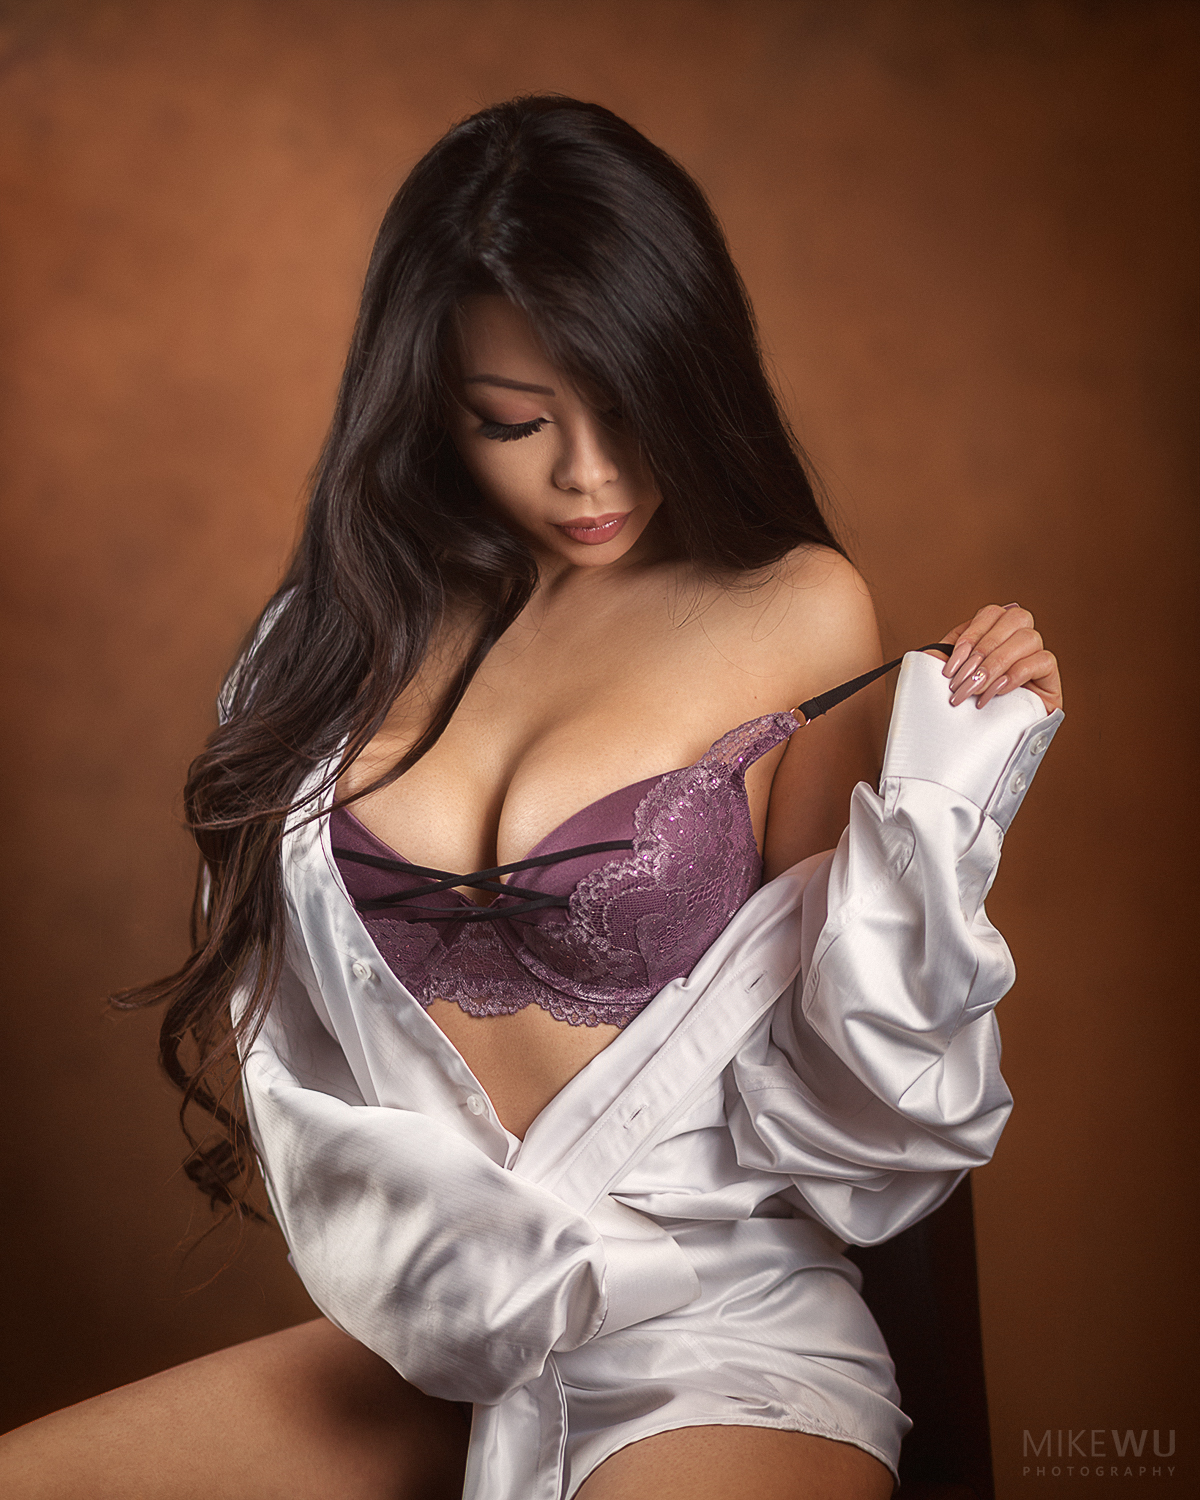 vancouver portrait photographer mike wu indoor studio beautiful sexy boudoir intimate asian photoshoot white shirt purple bra alluring sitting lingerie 3d